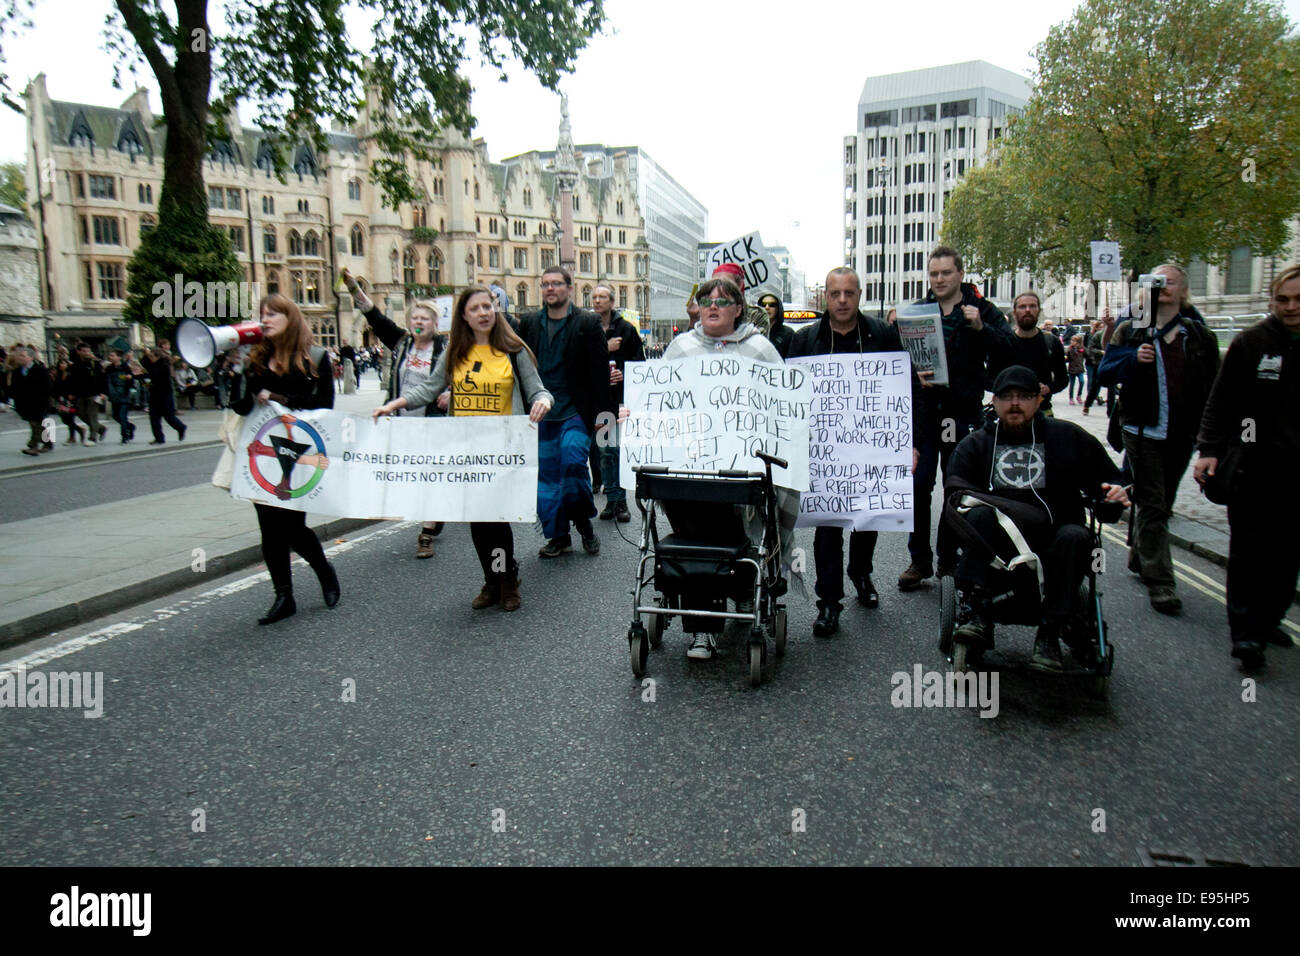 London, UK. 20th October, 2014.  A group of protesters outside the Department for  Works and Pensions calling on - Stock Image